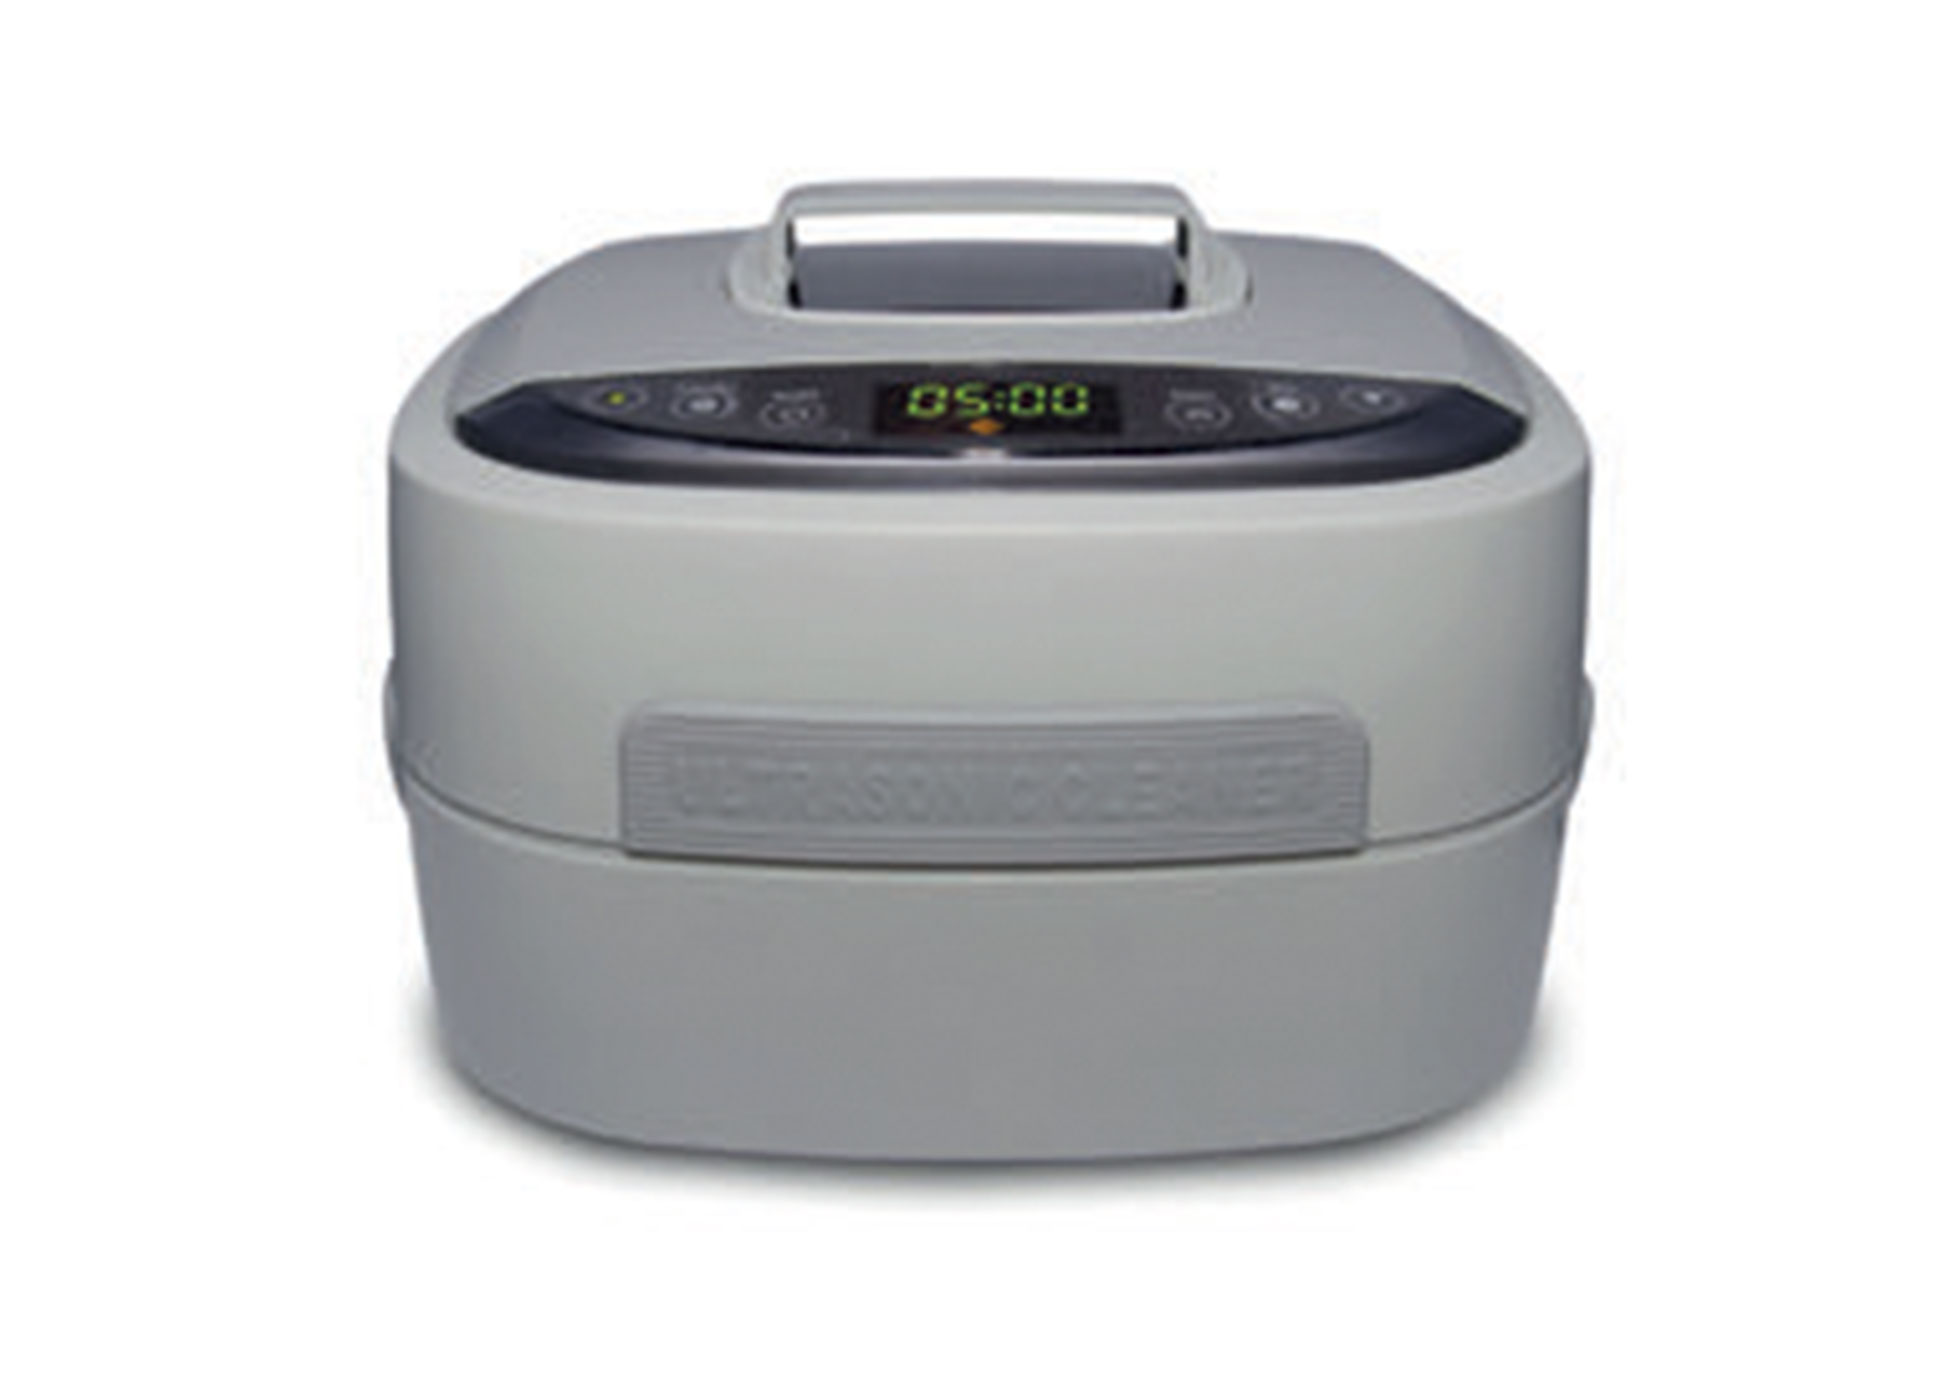 Ultrasonic Cleaners - 2200H - Cleaner with Tray Liner